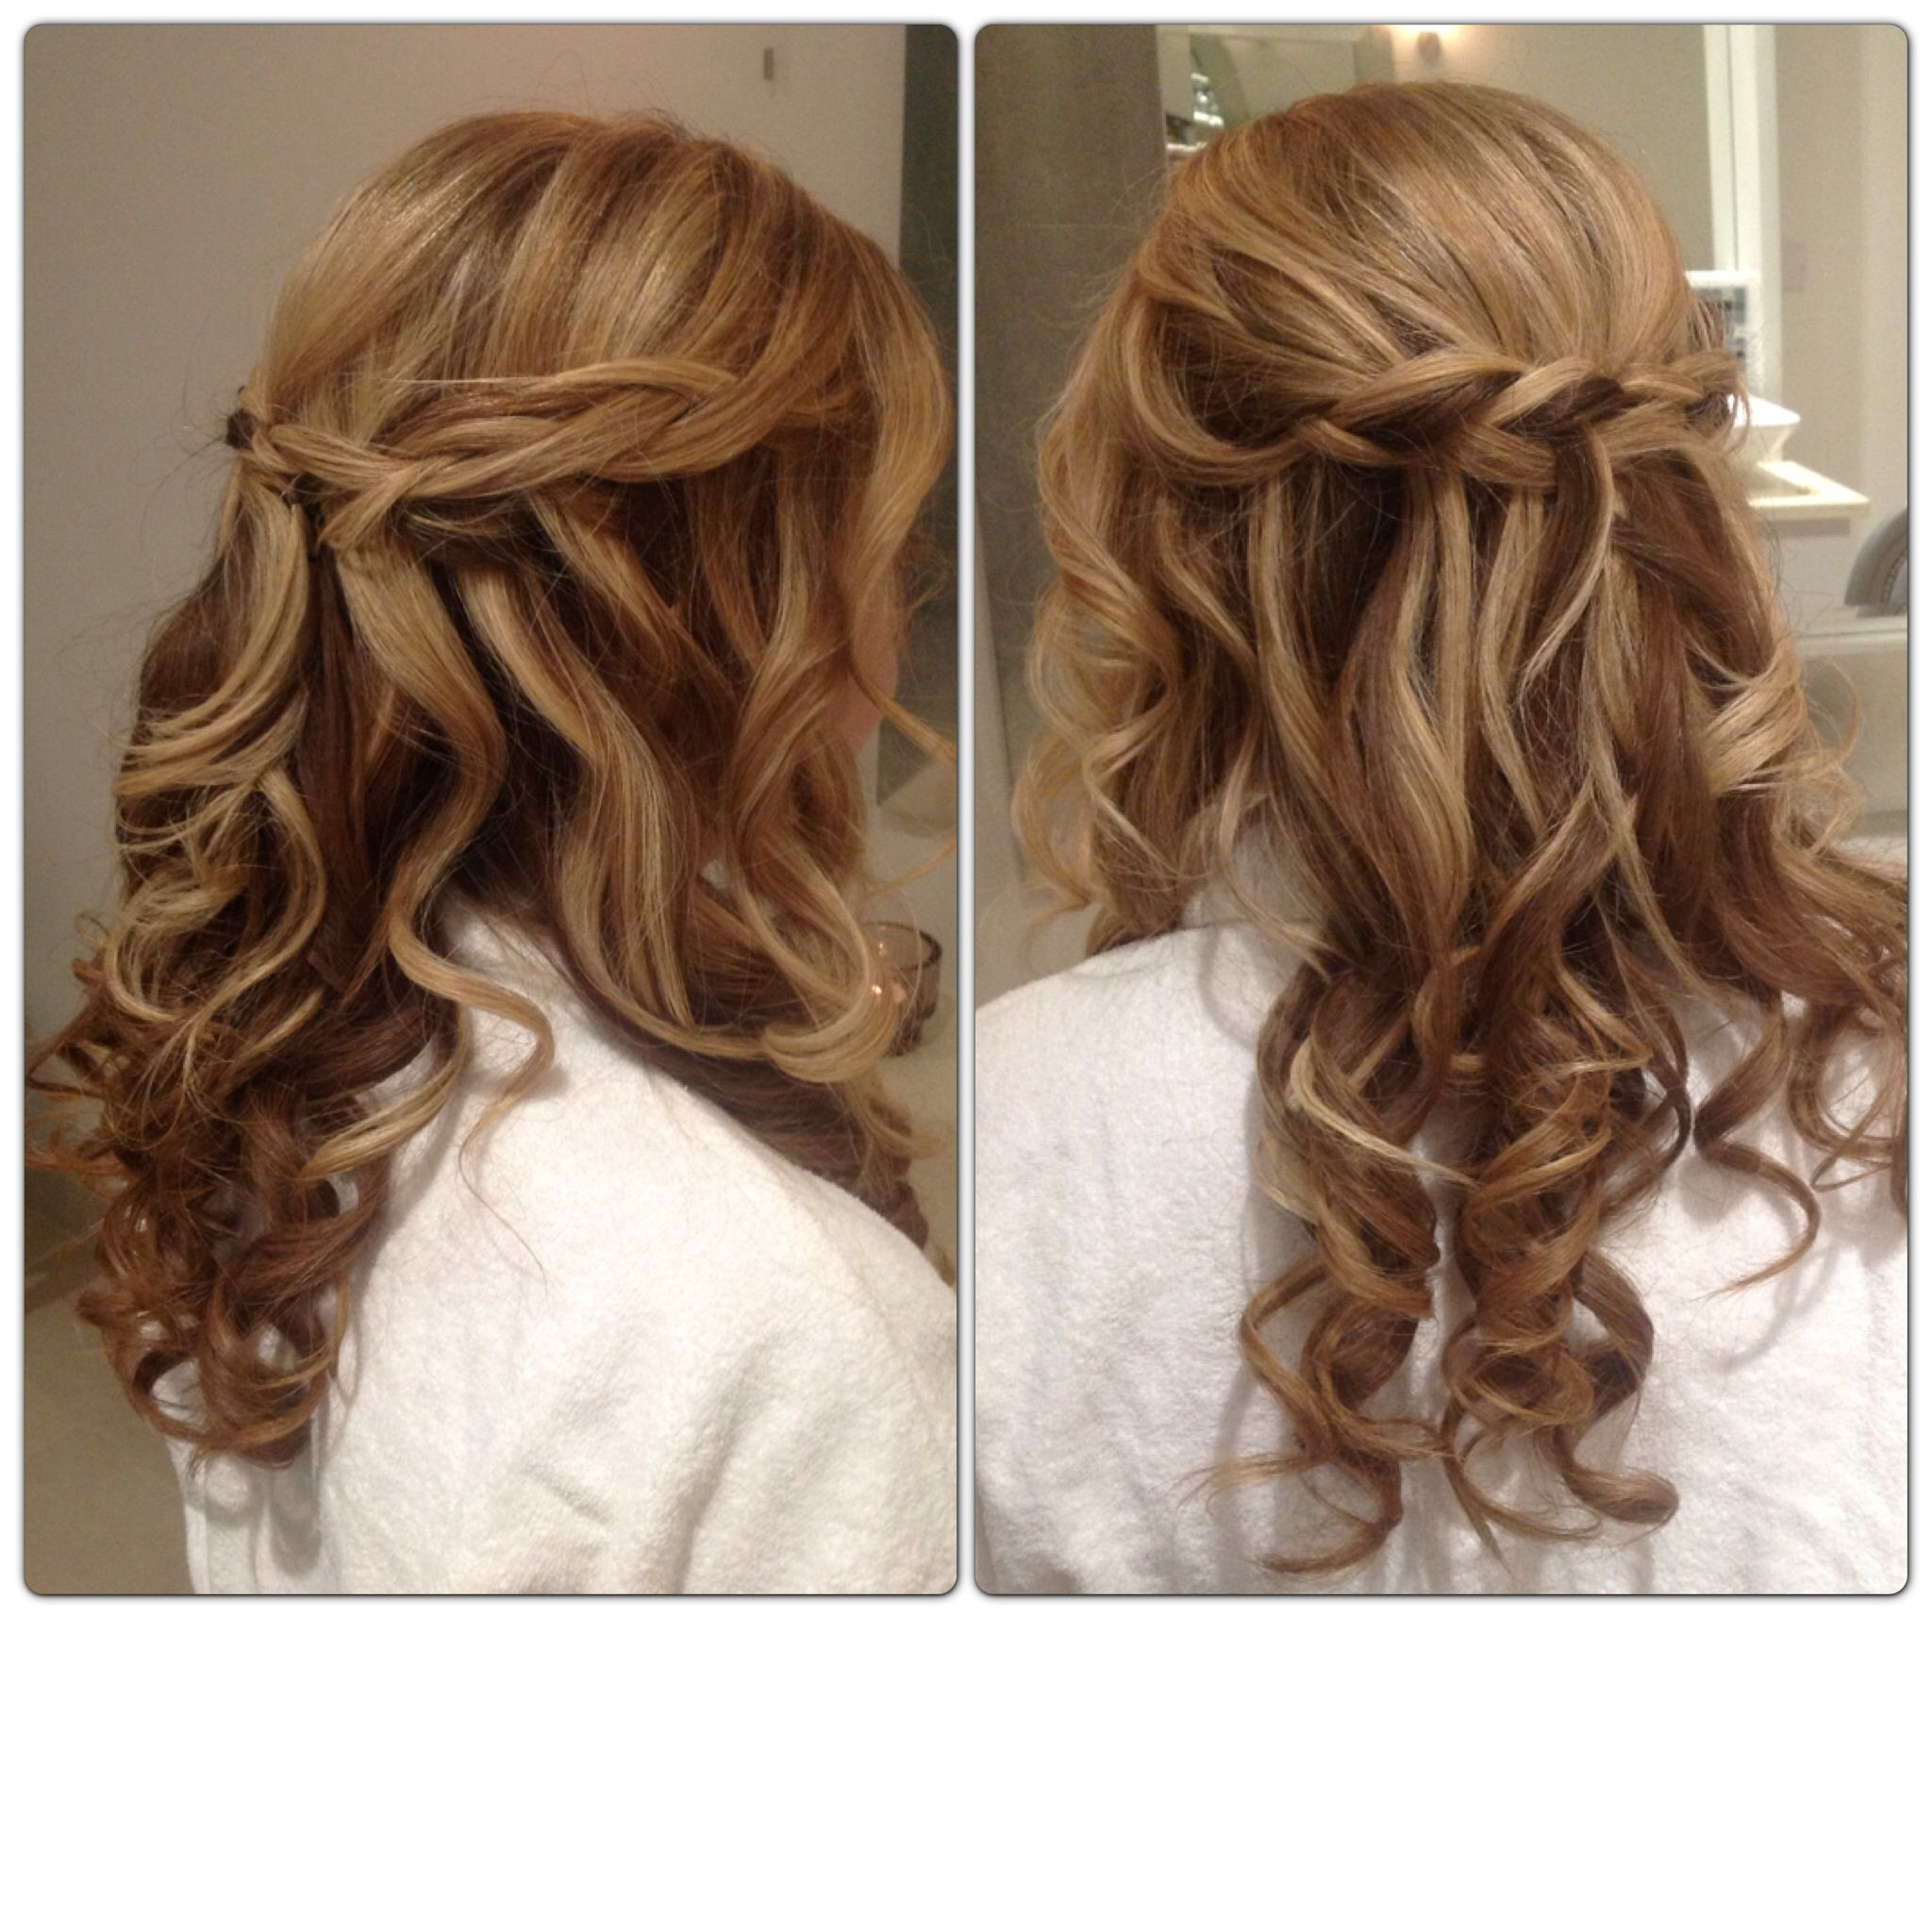 Wedding Hairstyles Up Half Up Down Straight With Braid: Wedding Hair Half, Prom Hair